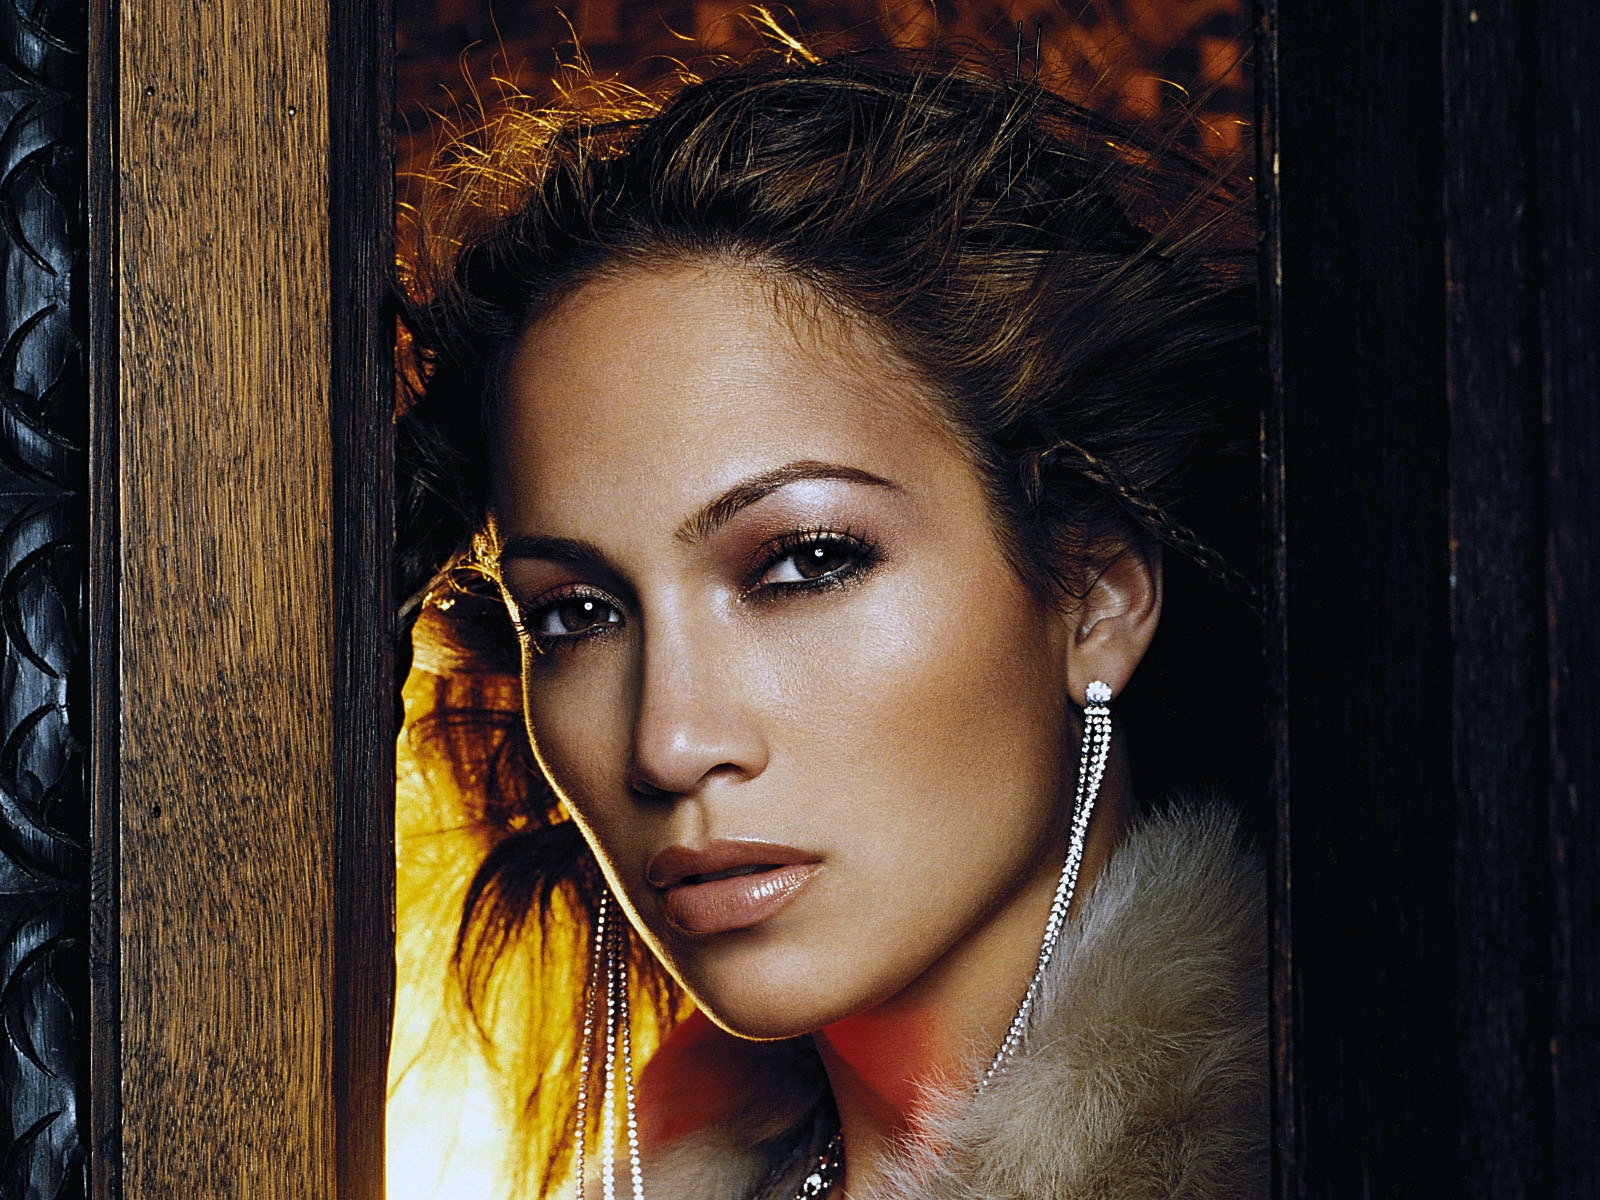 J.Lo for 1600 x 1200 resolution